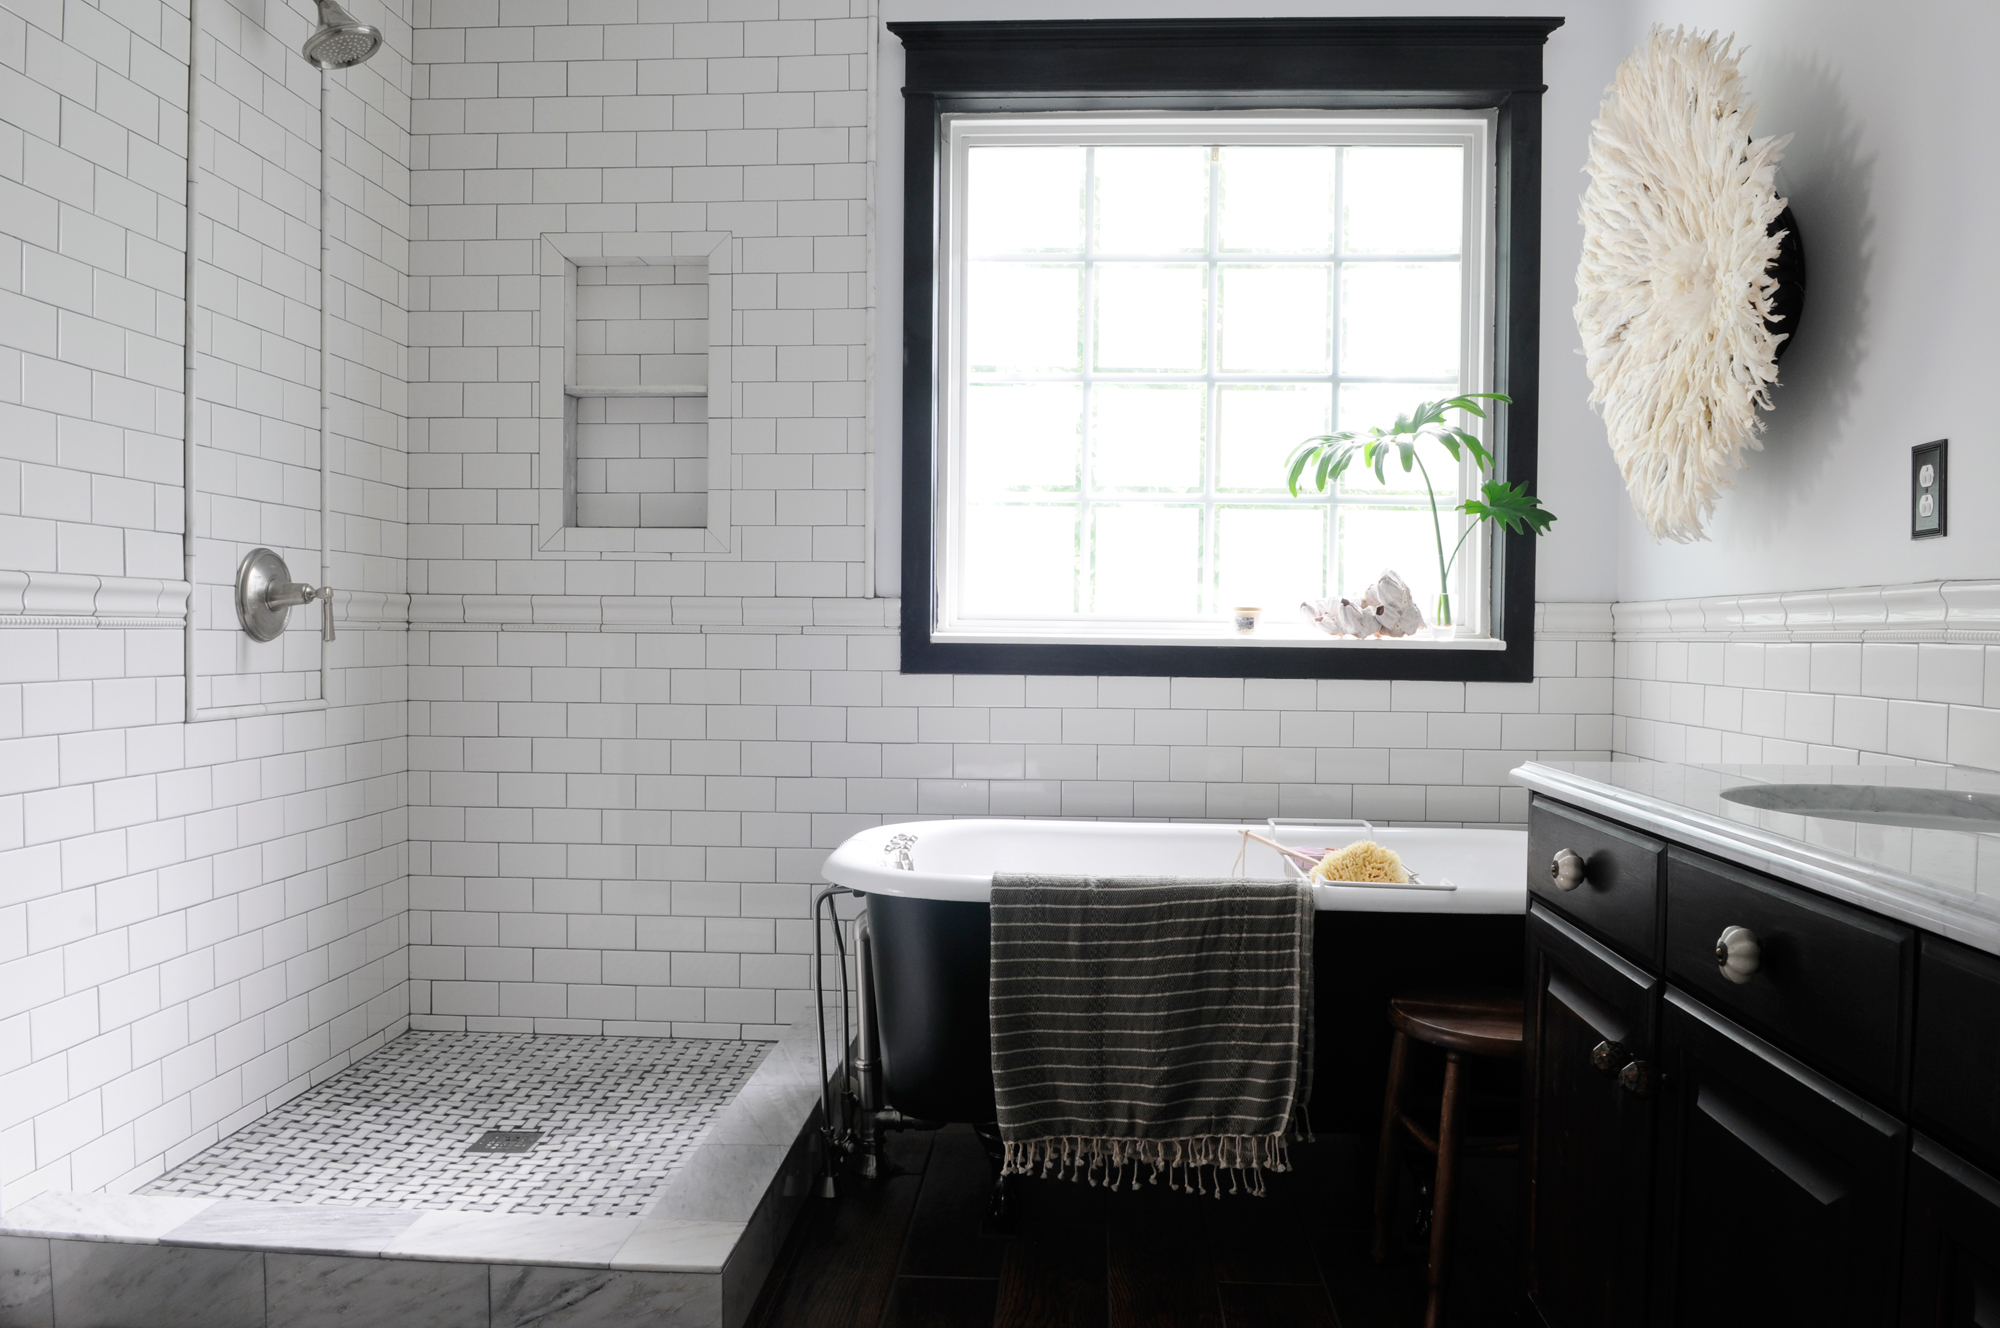 Cool black and white bathroom design ideas for Bathroom design ideas black and white